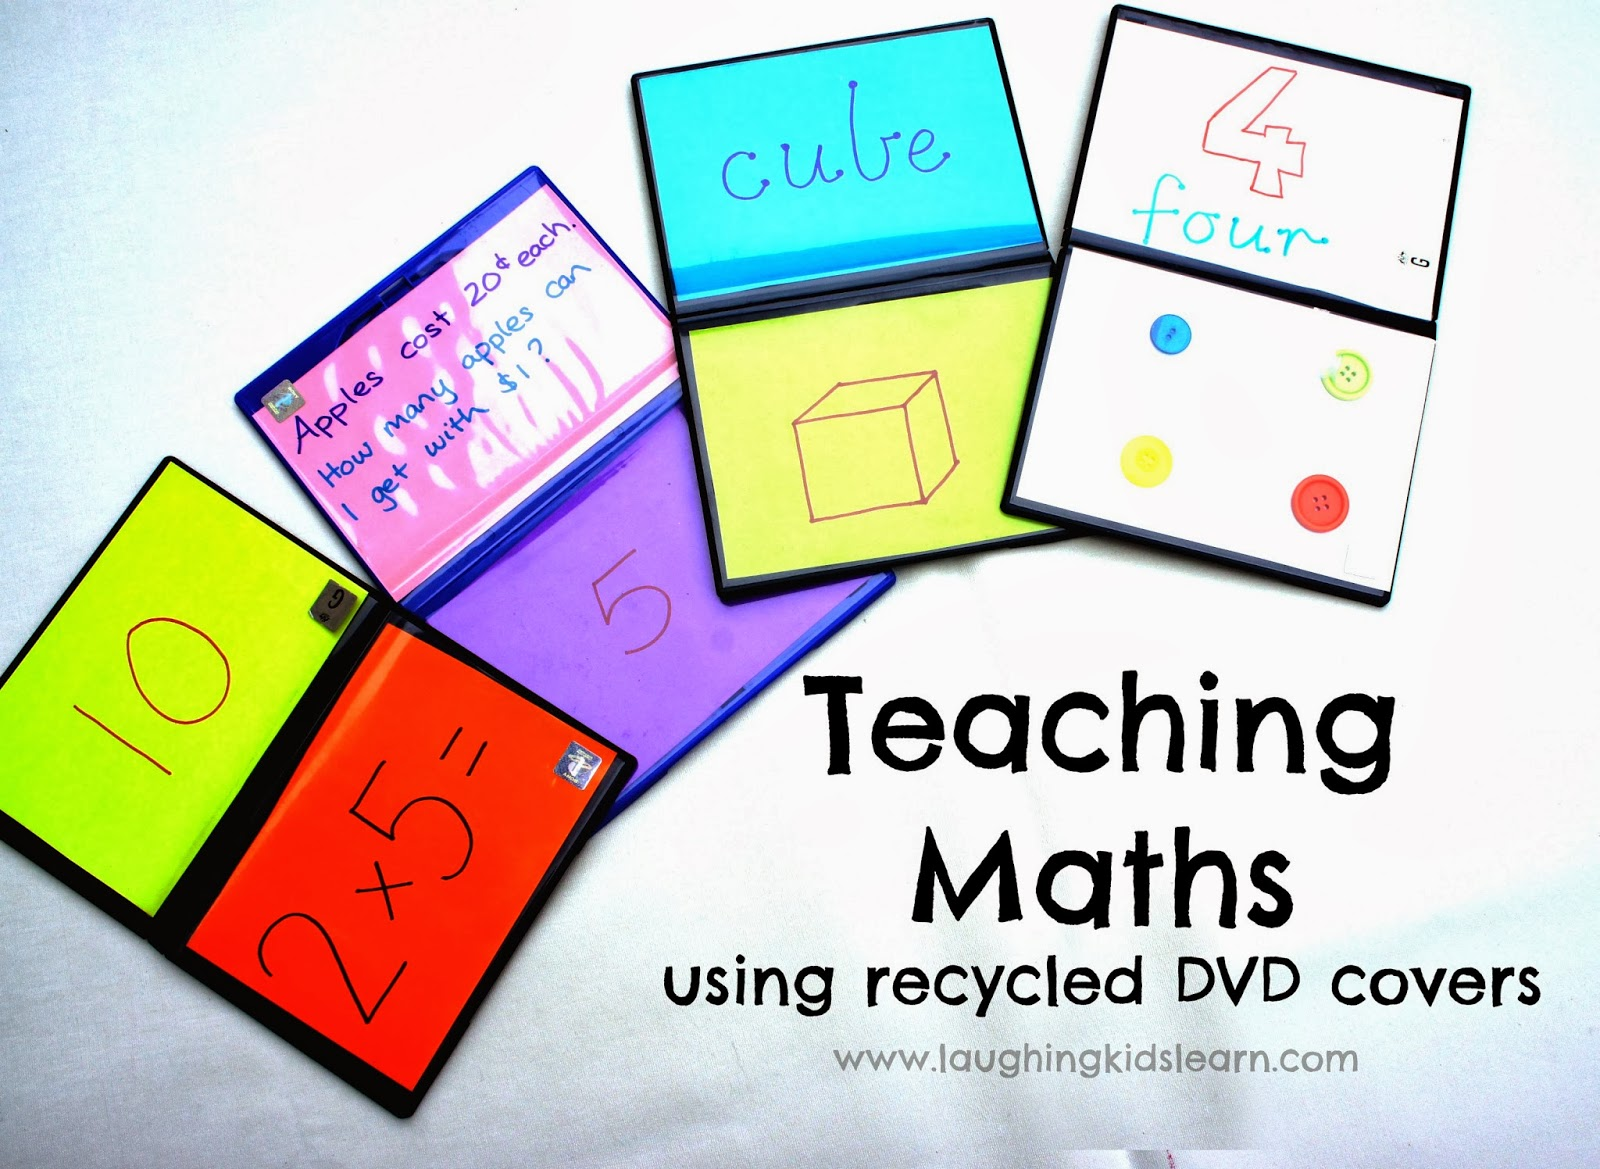 Teaching Maths Teaching Maths Using Recycled Dvd Covers Laughing Kids Learn